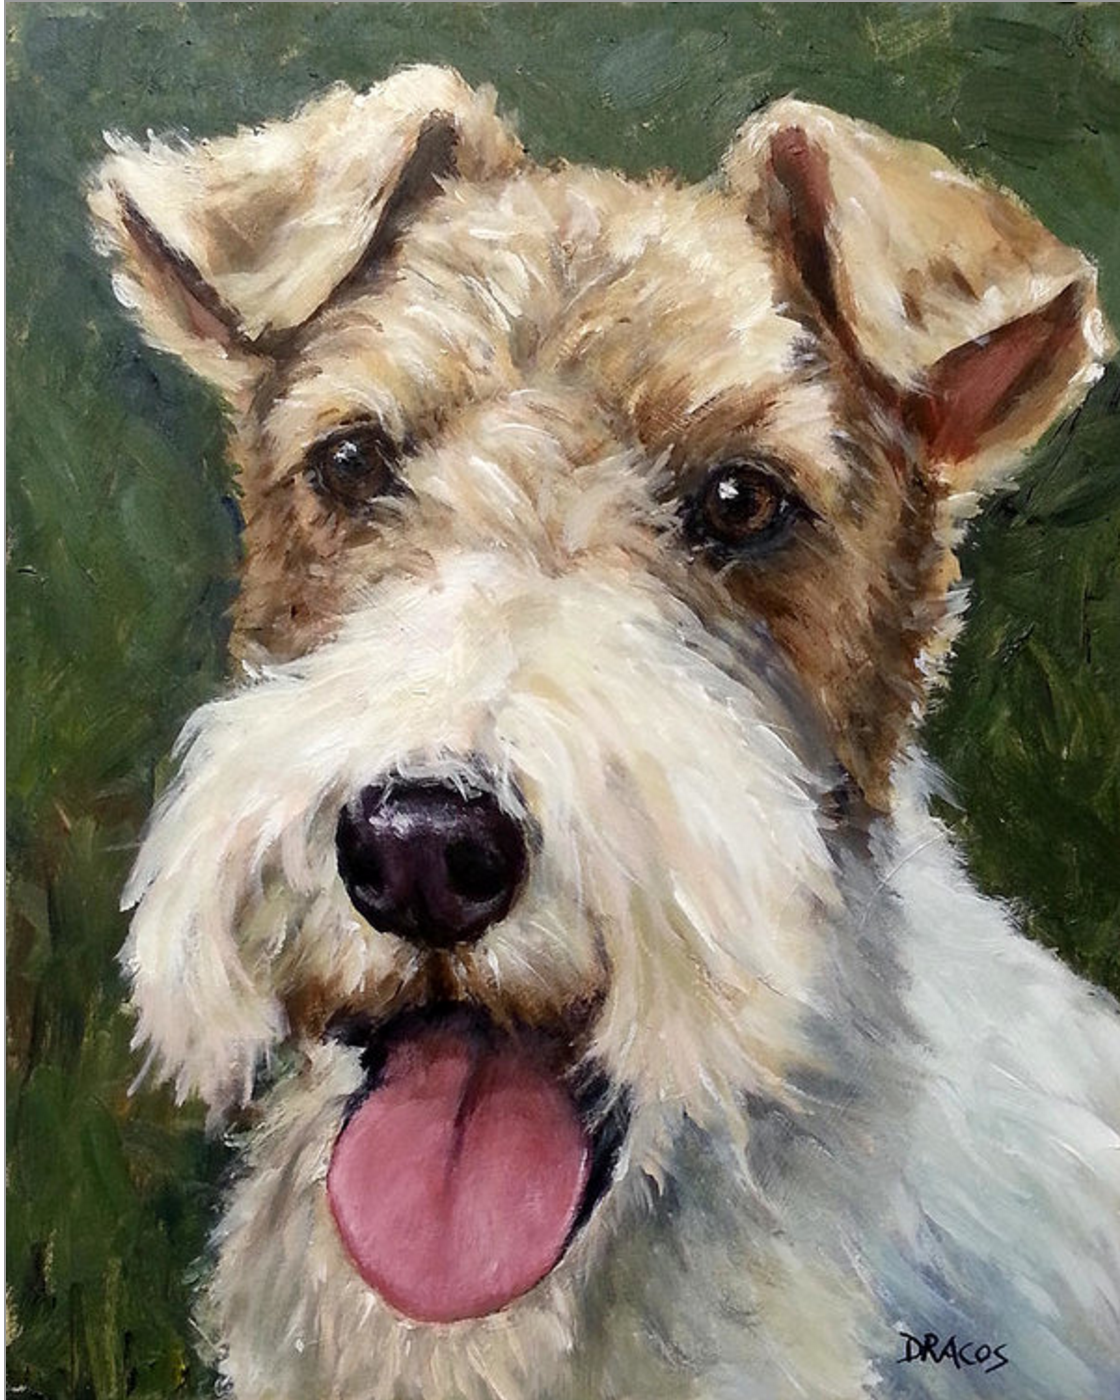 Fox Terrier Archives - National Purebred Dog Day®